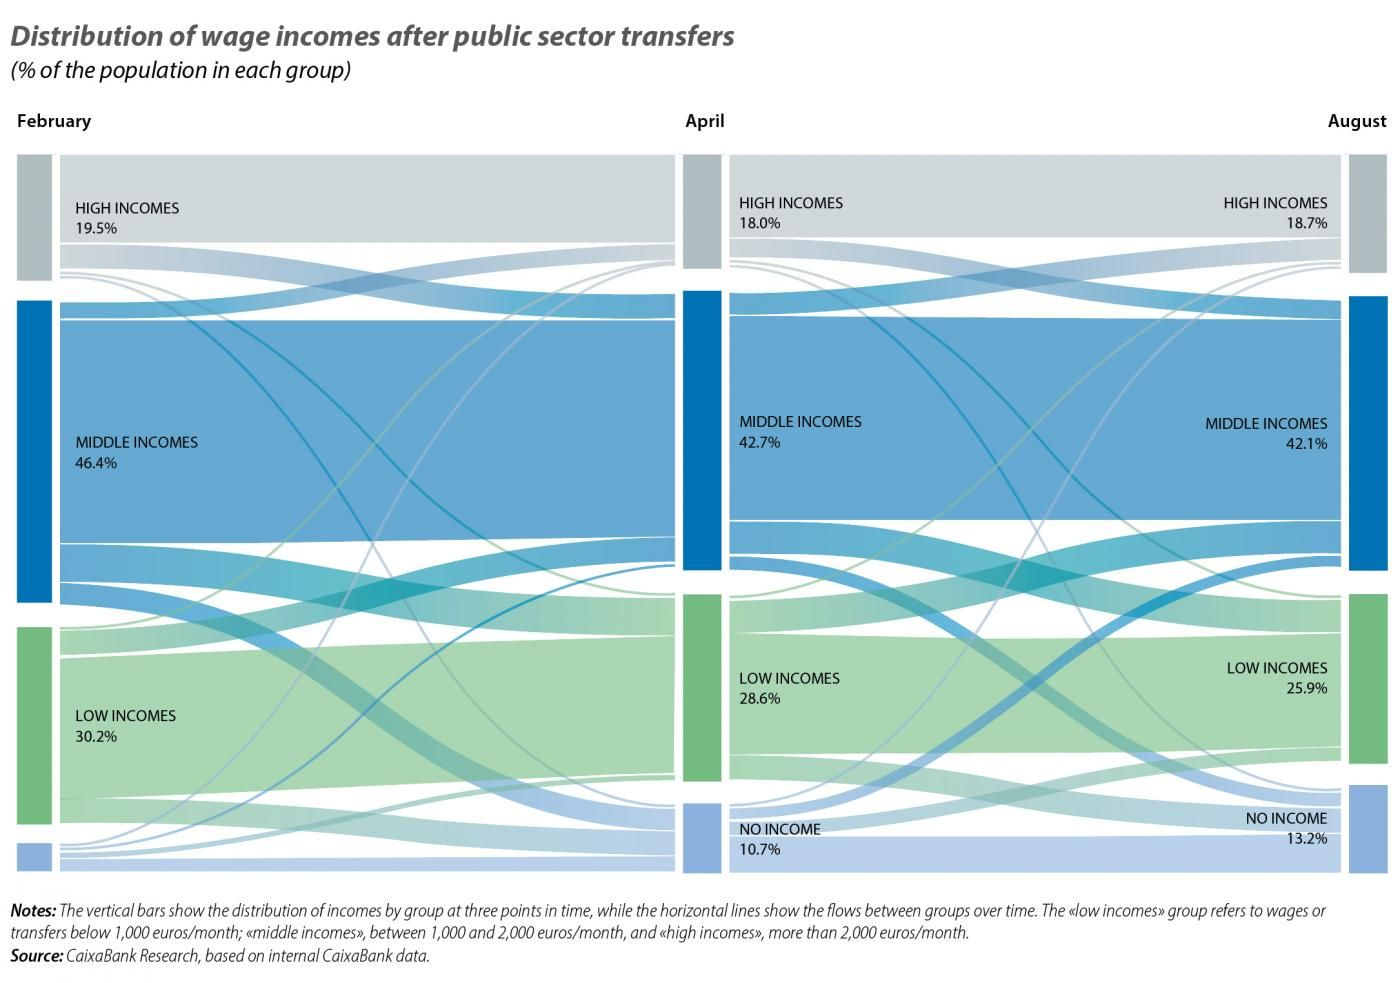 Distribution of wage incomes after public sector transfers